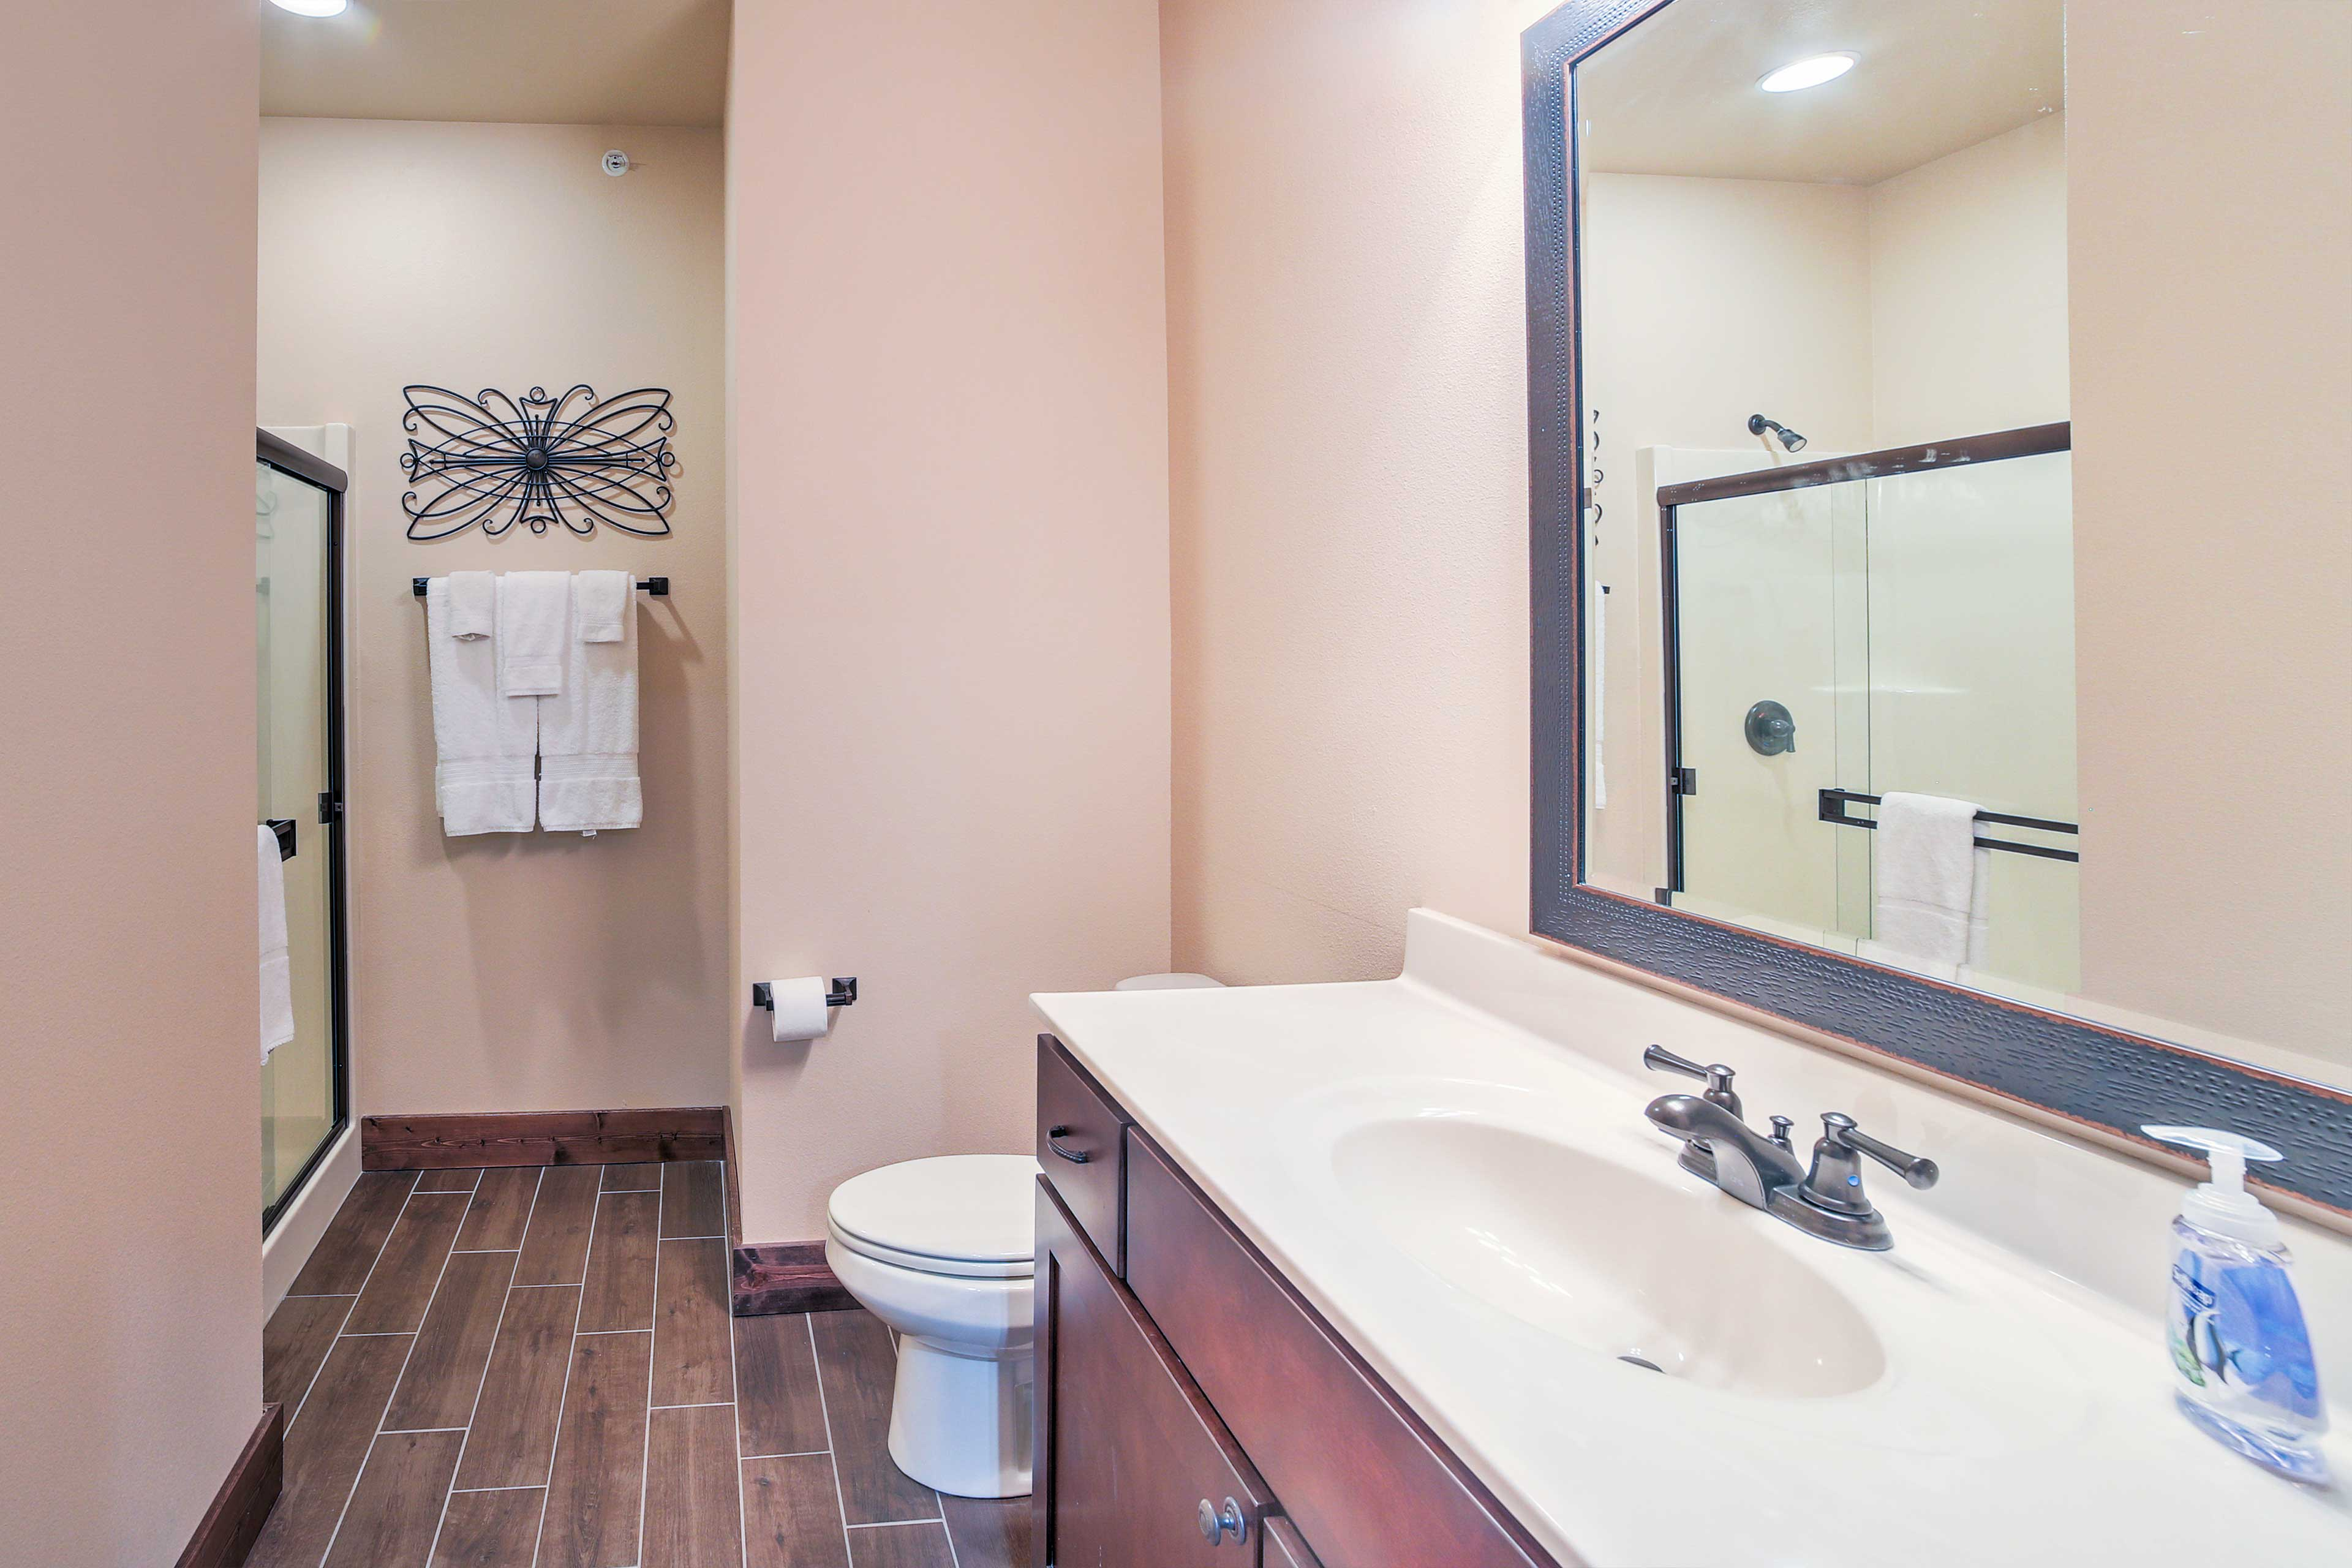 In the morning, start your day fresh in this full bathroom with a shower/tub combo!